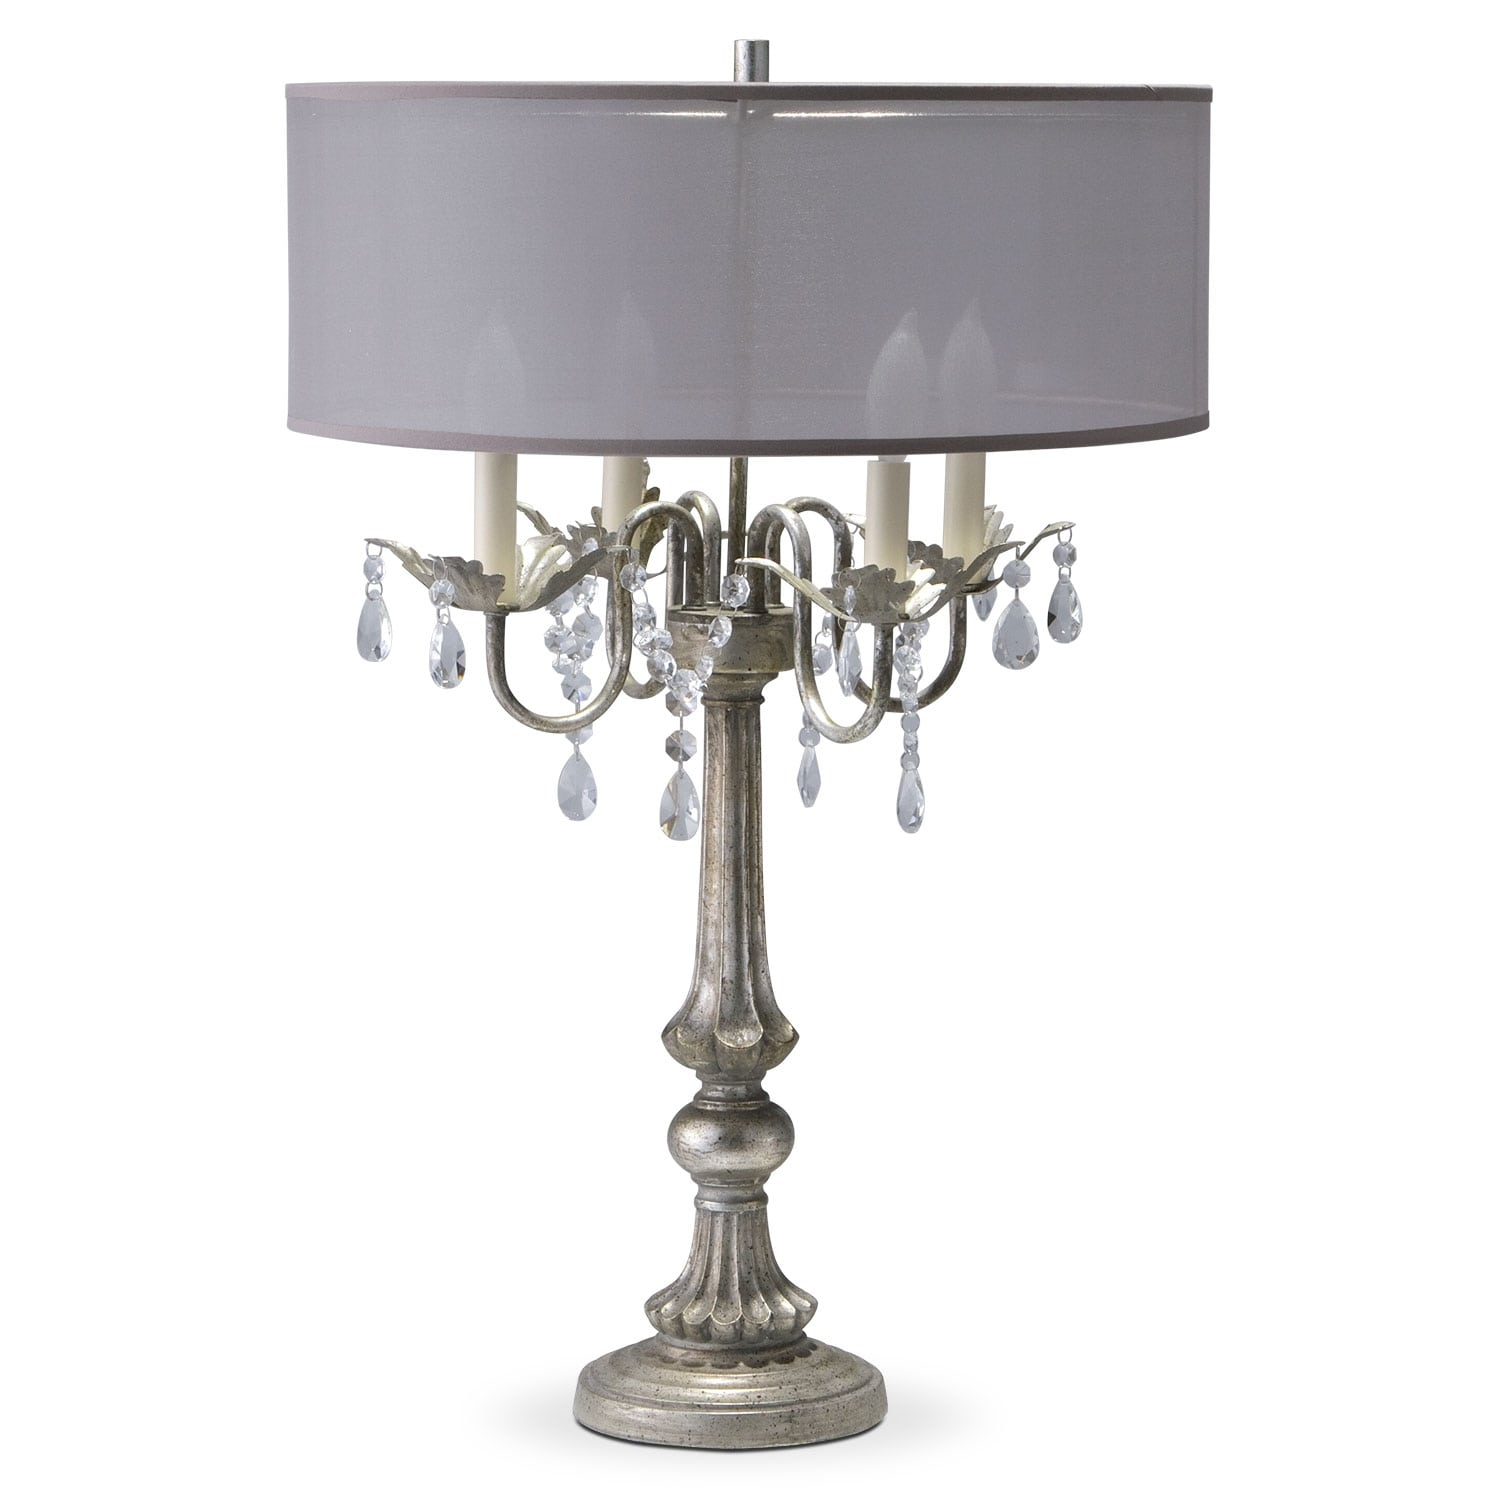 Table Lamps | Value City Furniture and Mattresses